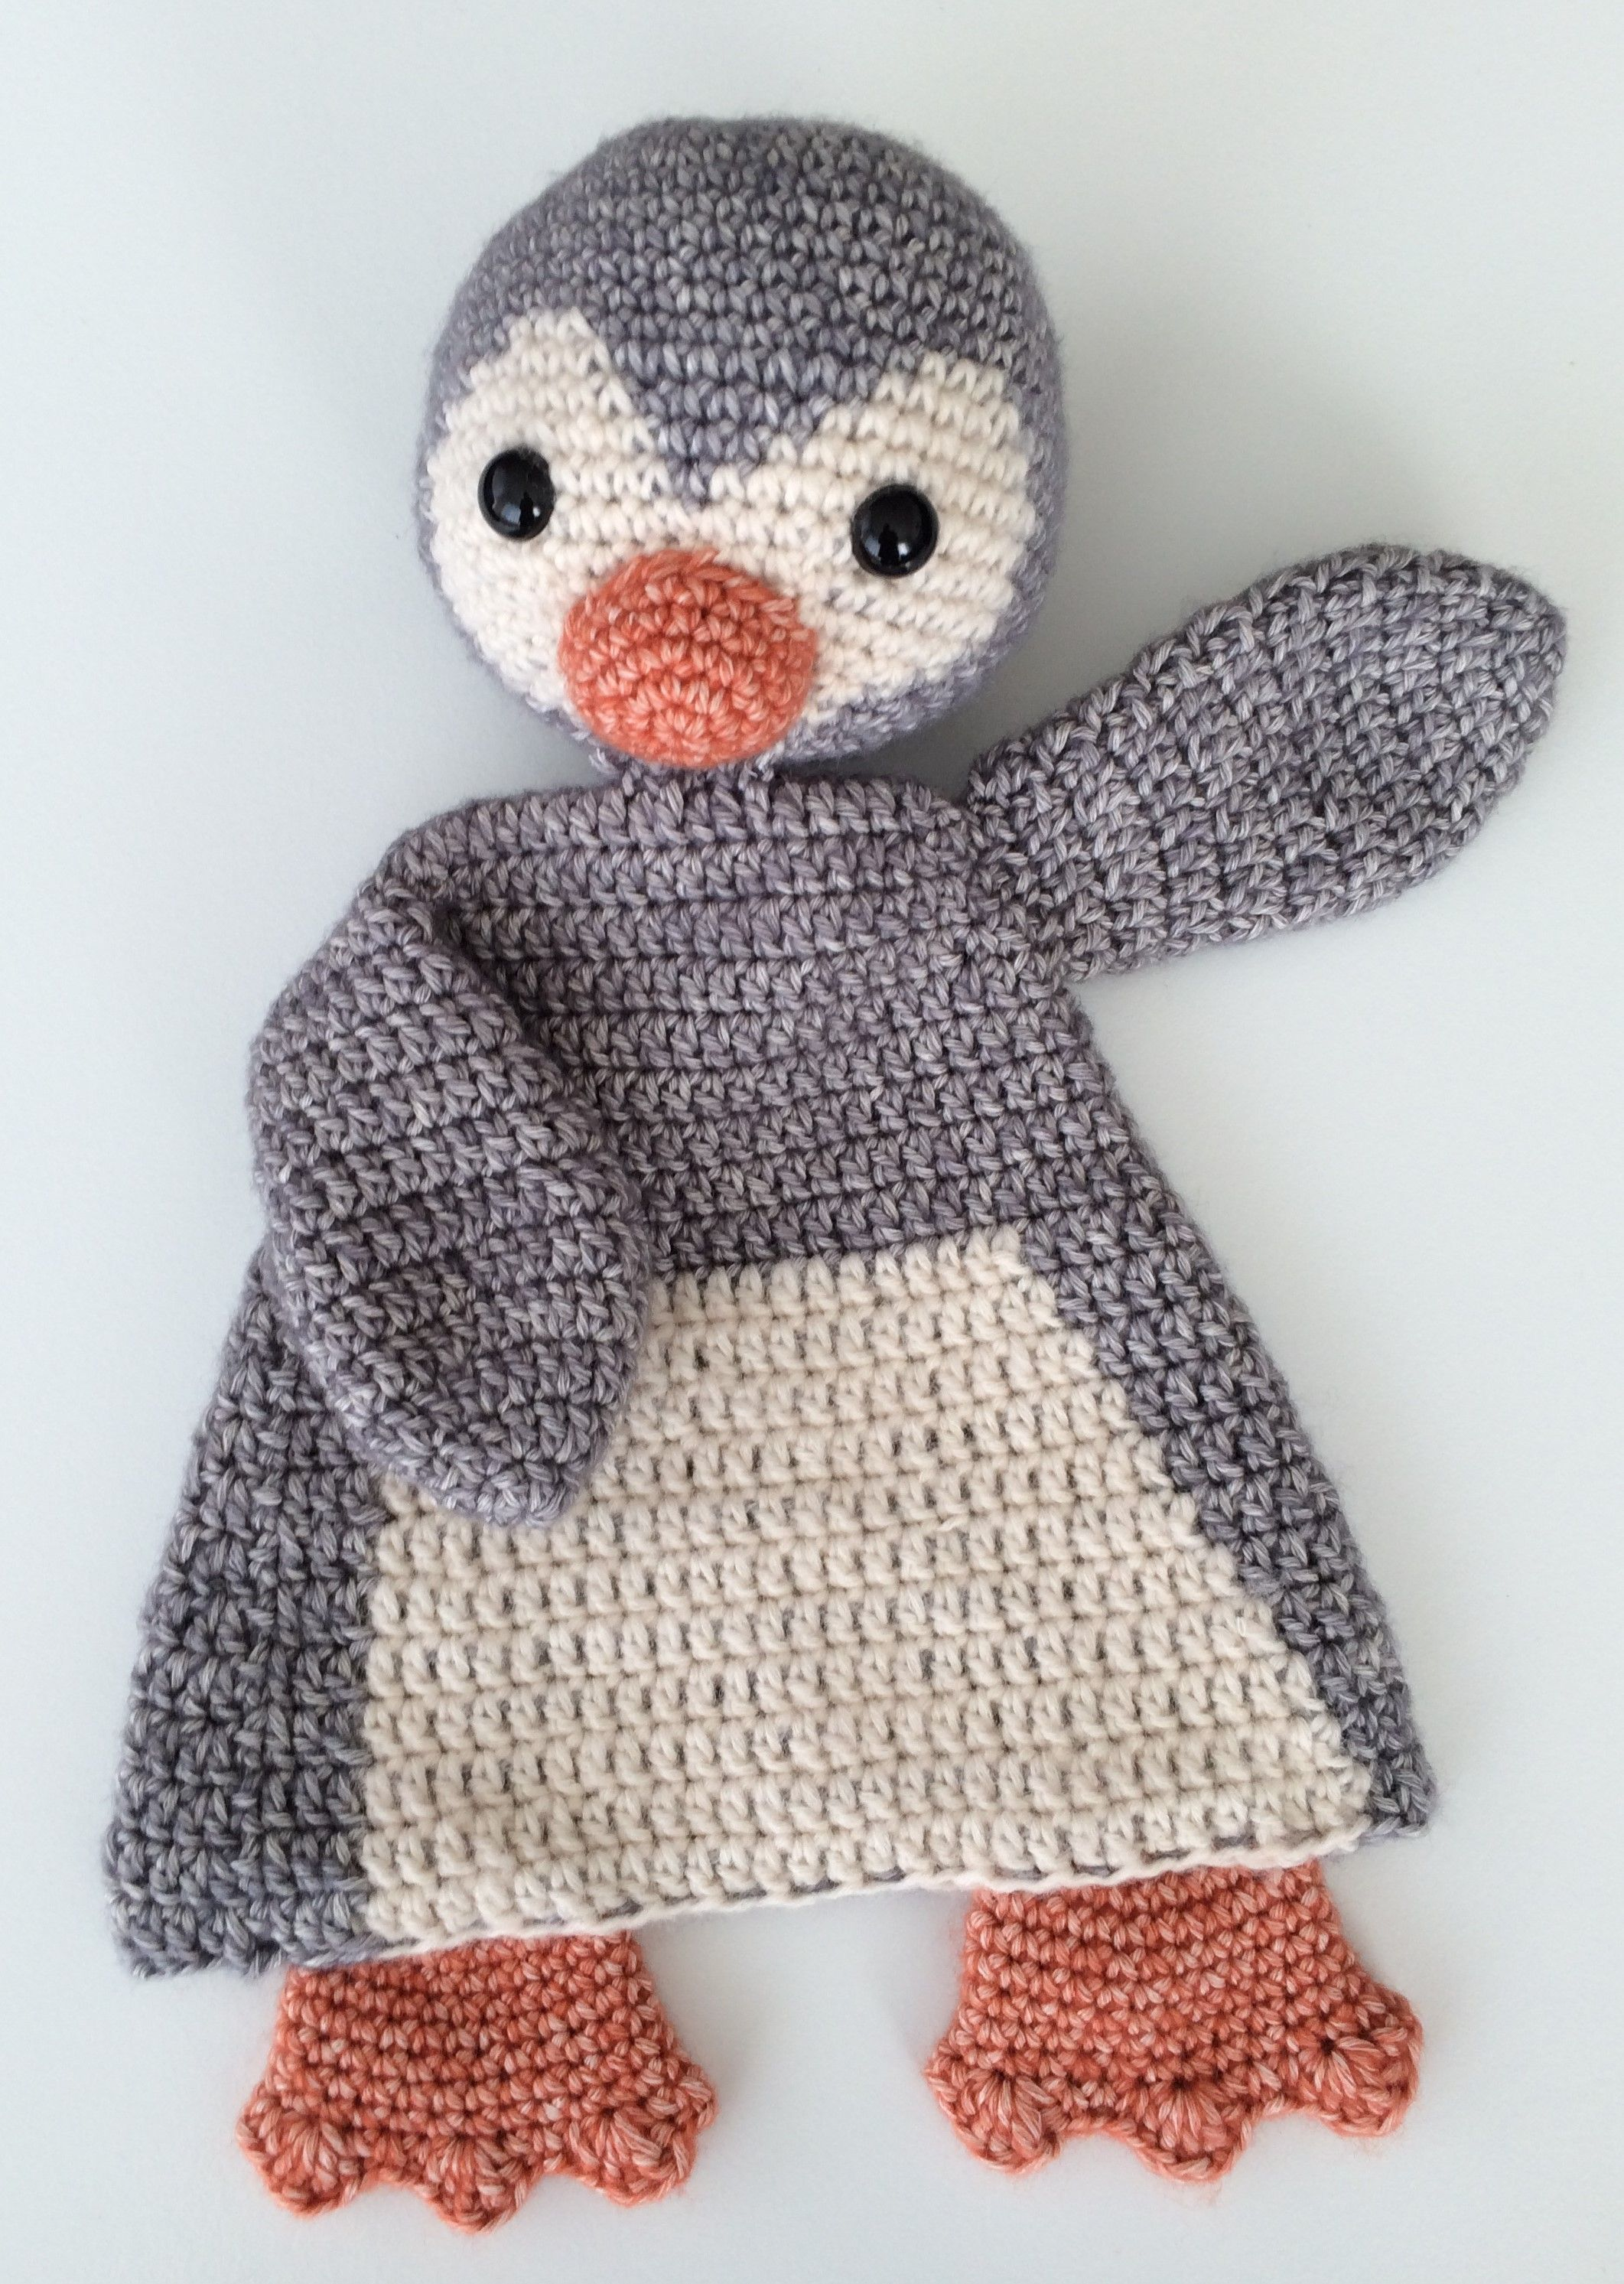 lappenpop - pinguïn - made by Marygold - Crafty things | Pinterest ...